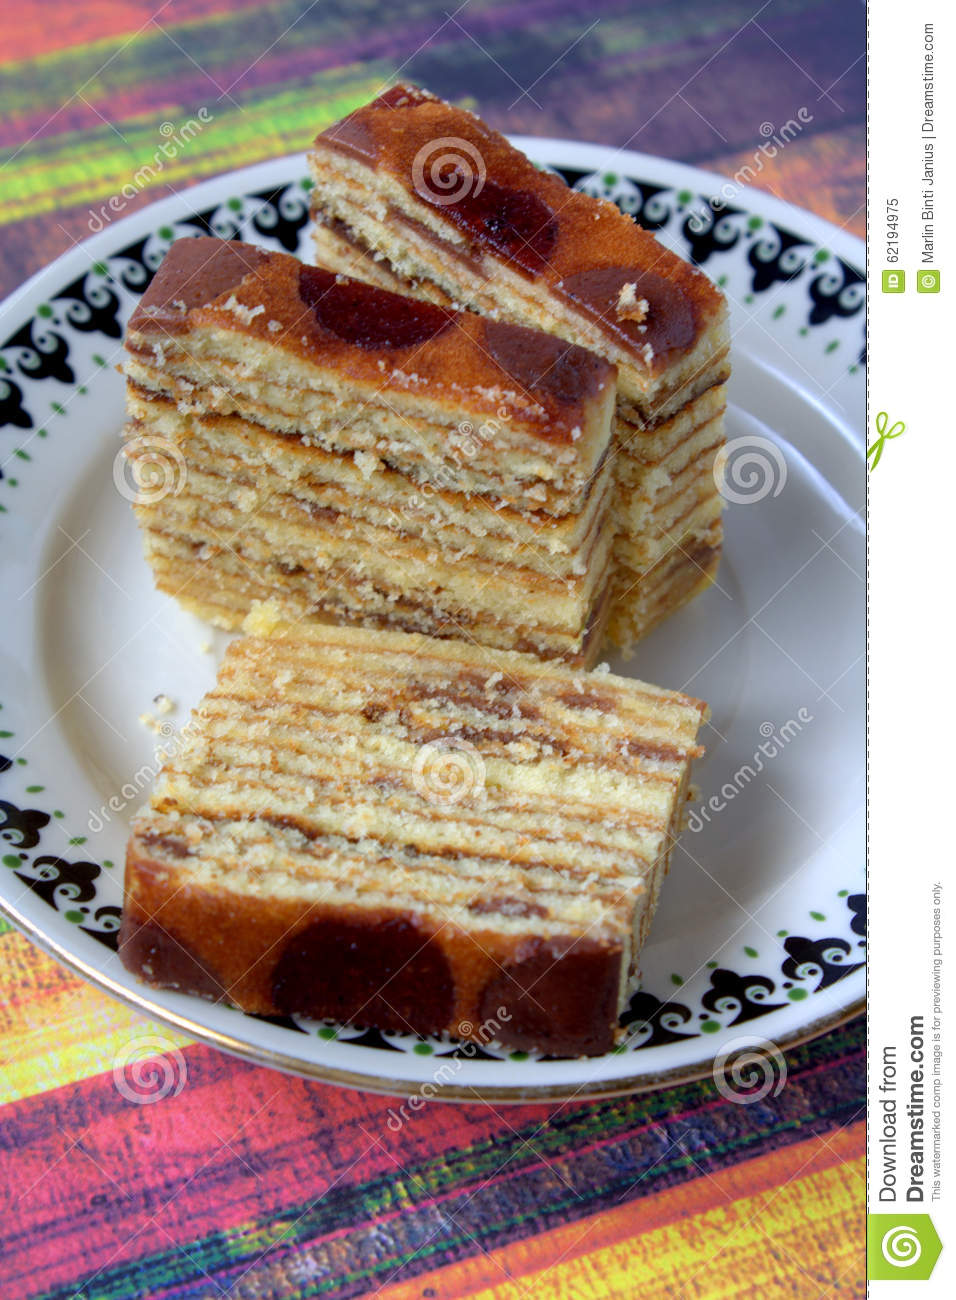 Kek Lapis Malaysian Dessert Stock Photo Image 62194975